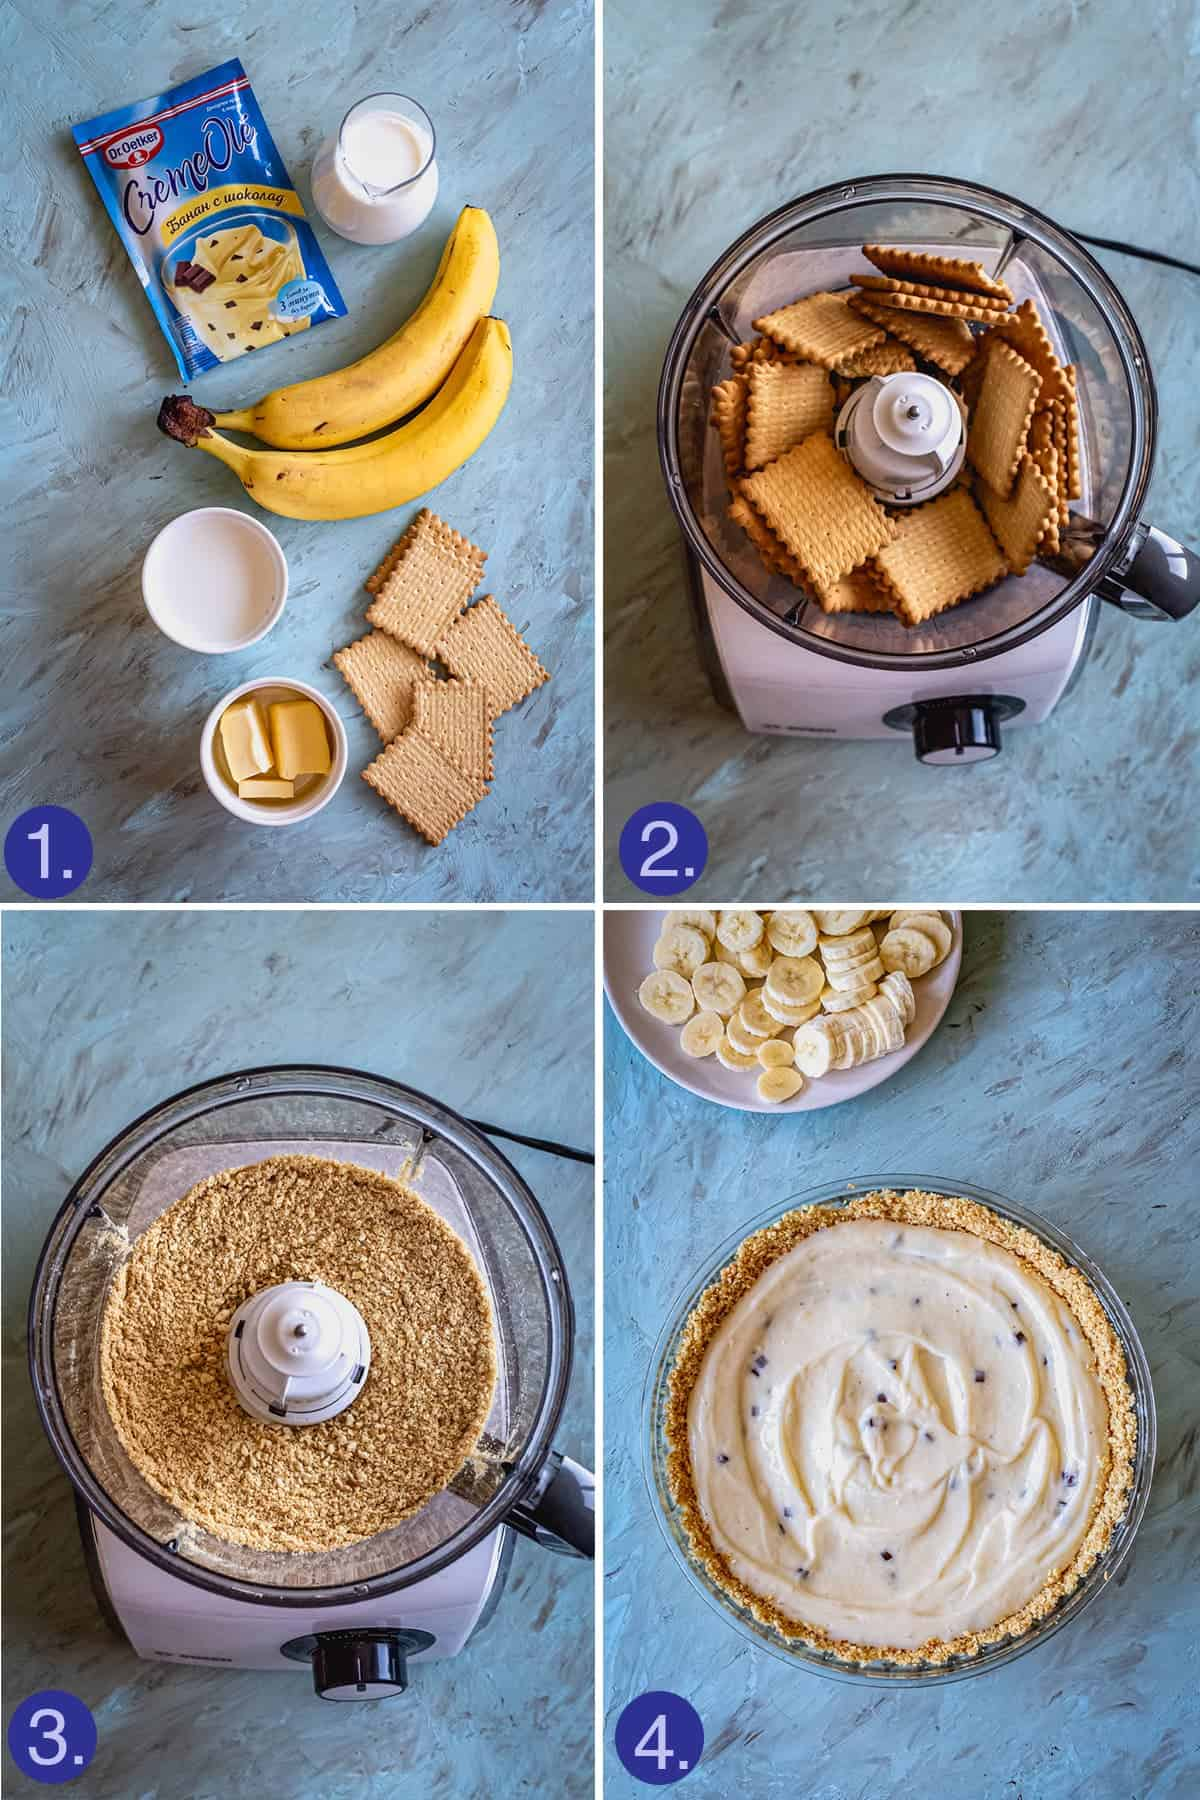 ingredients and steps to make the pie